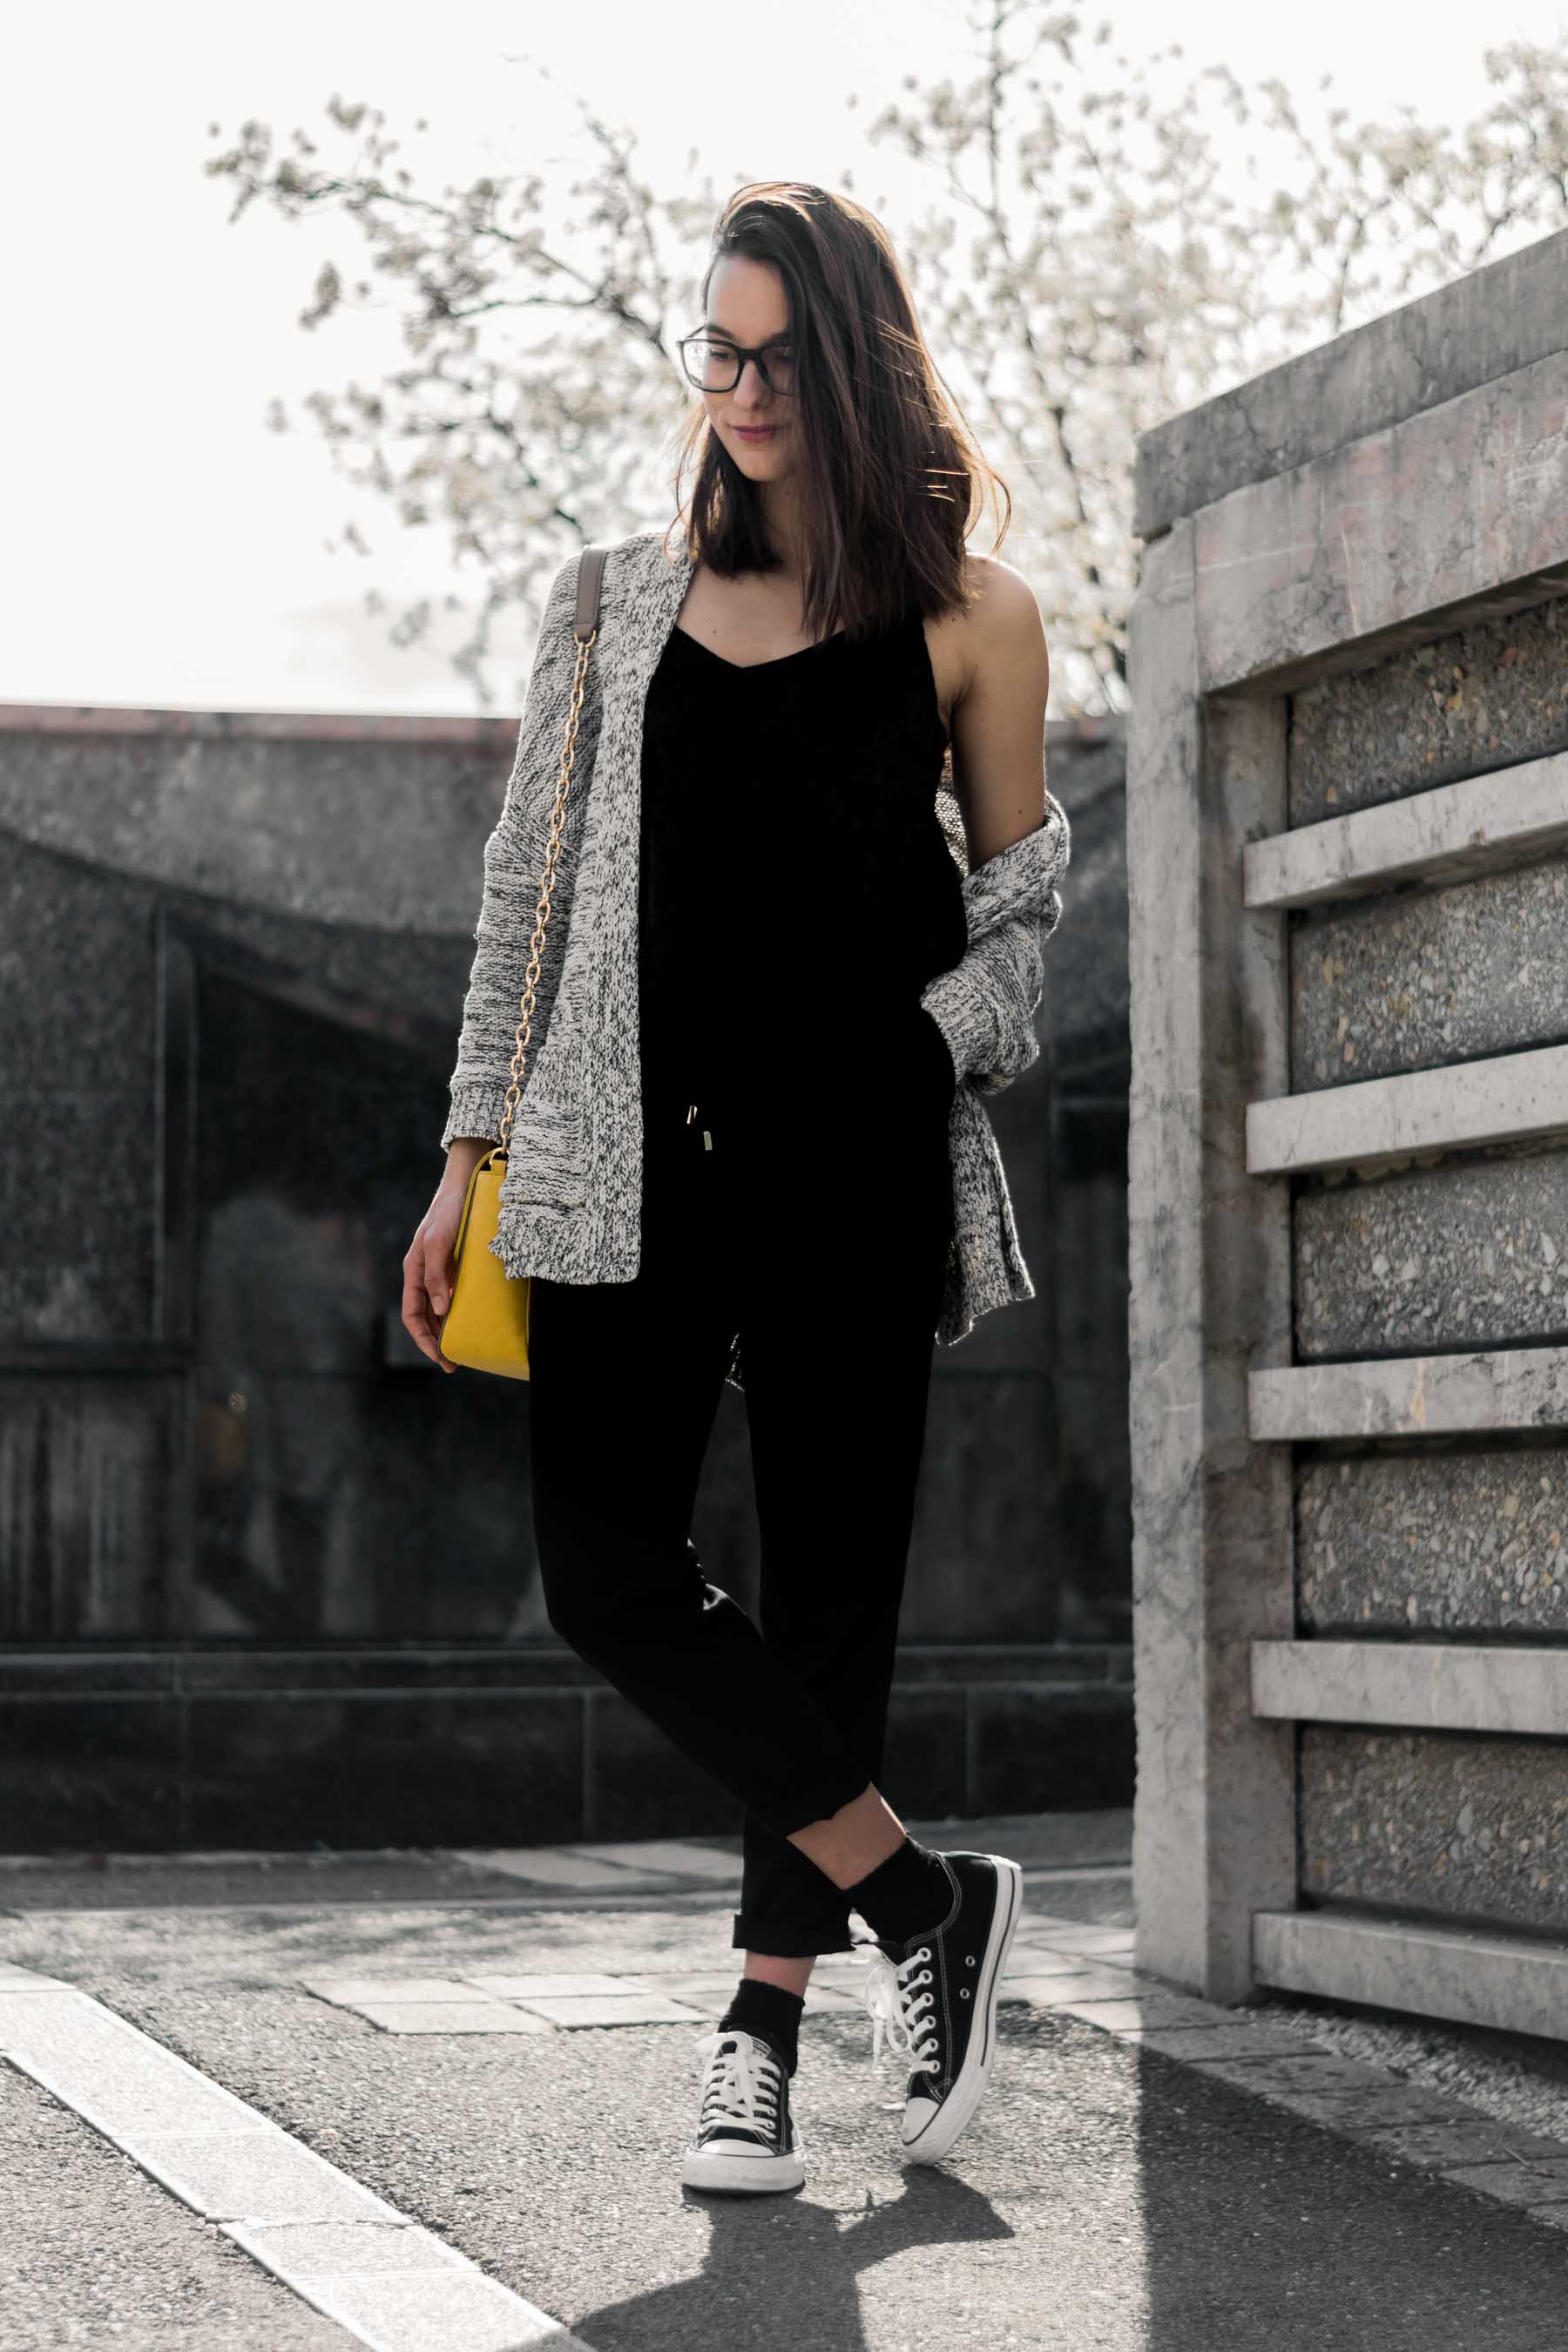 fashion-blogger-spring-outfit-inspiration-32